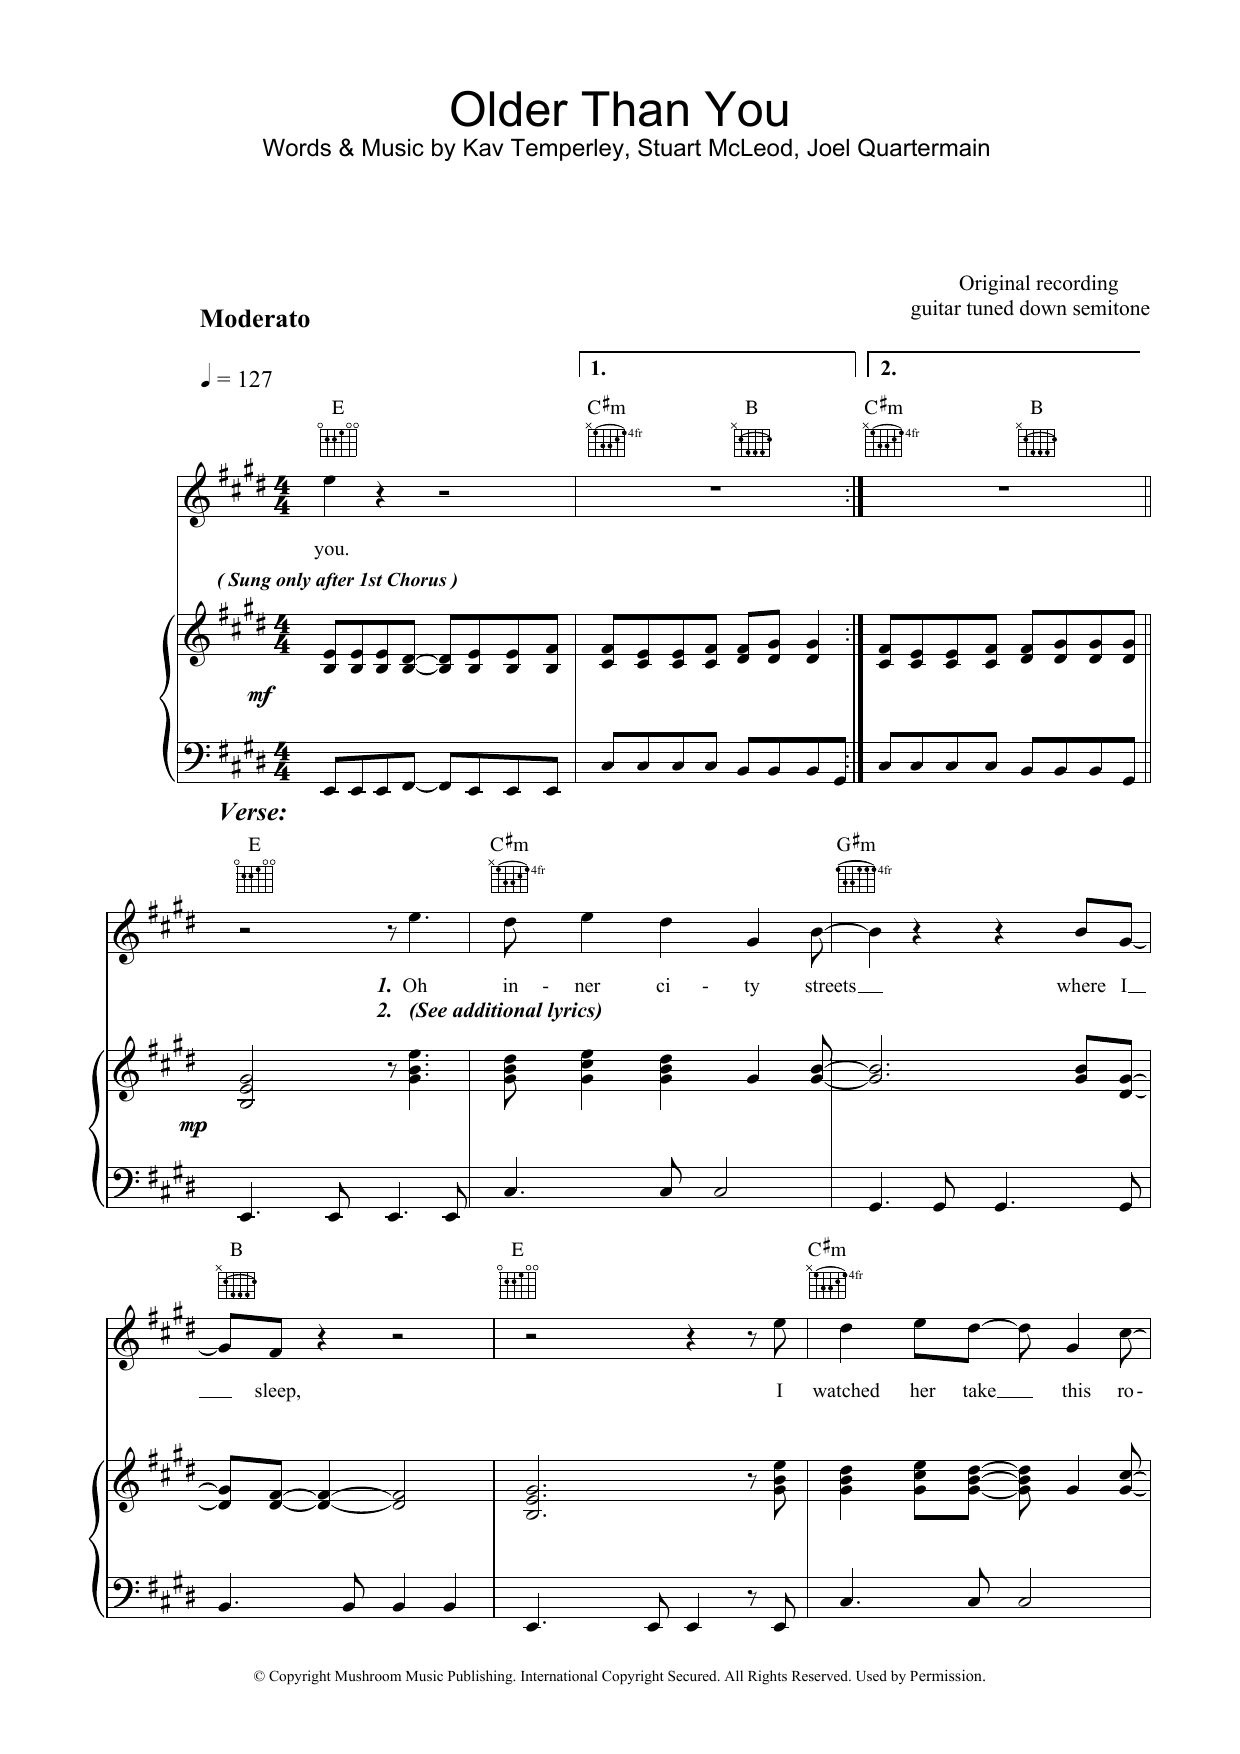 Older Than You Sheet Music